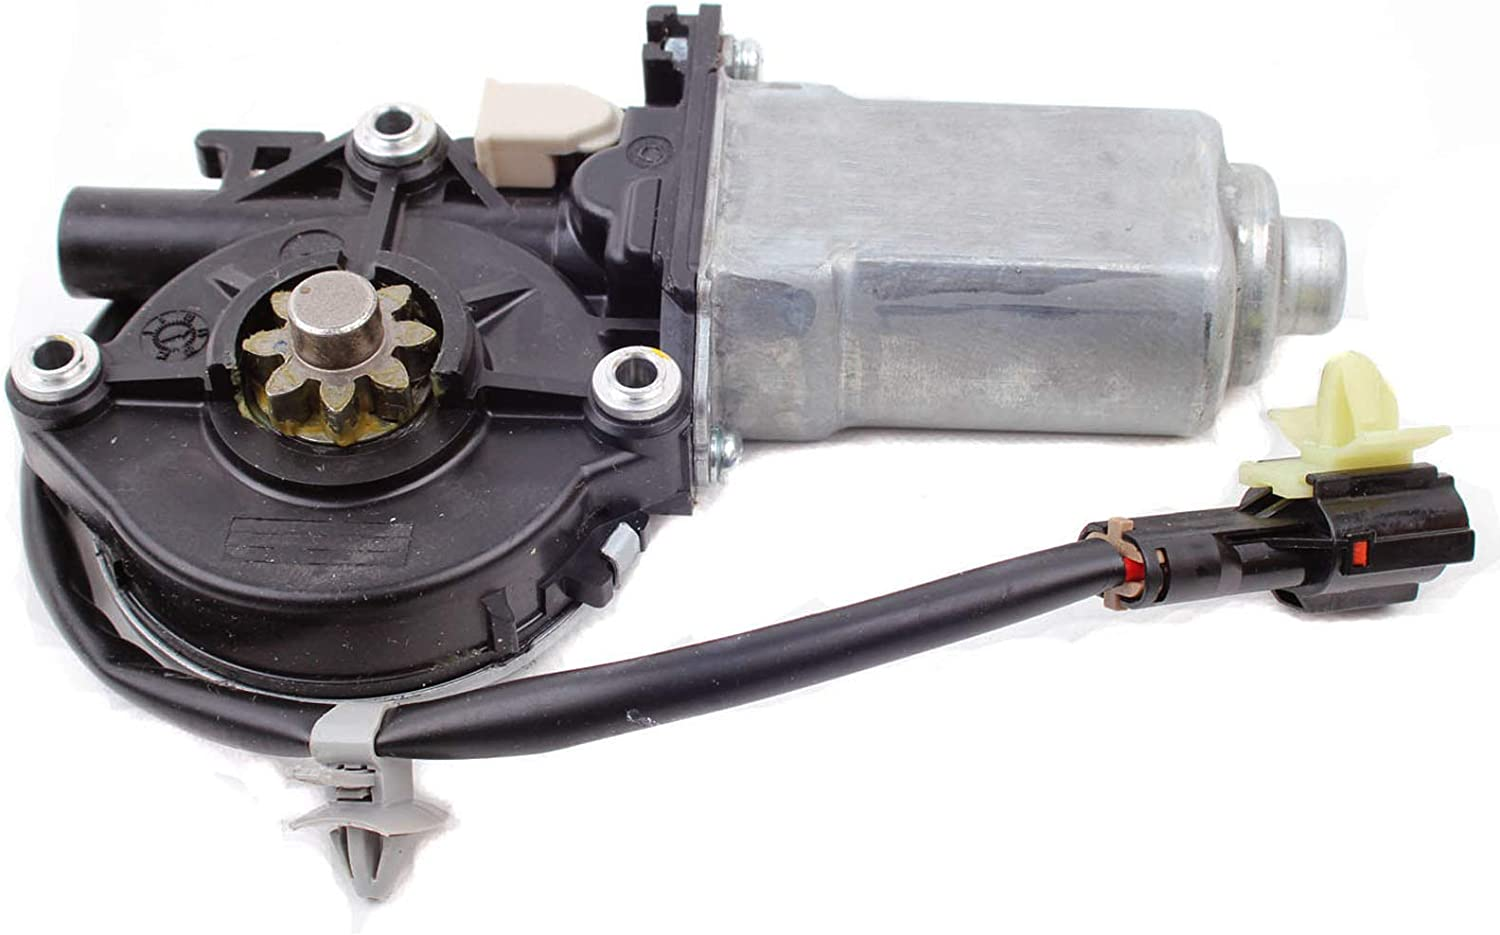 Details about  /Fits 03-09 Sorento Left Dr Front Door Window Motor /& Regulator w//out Auto Down